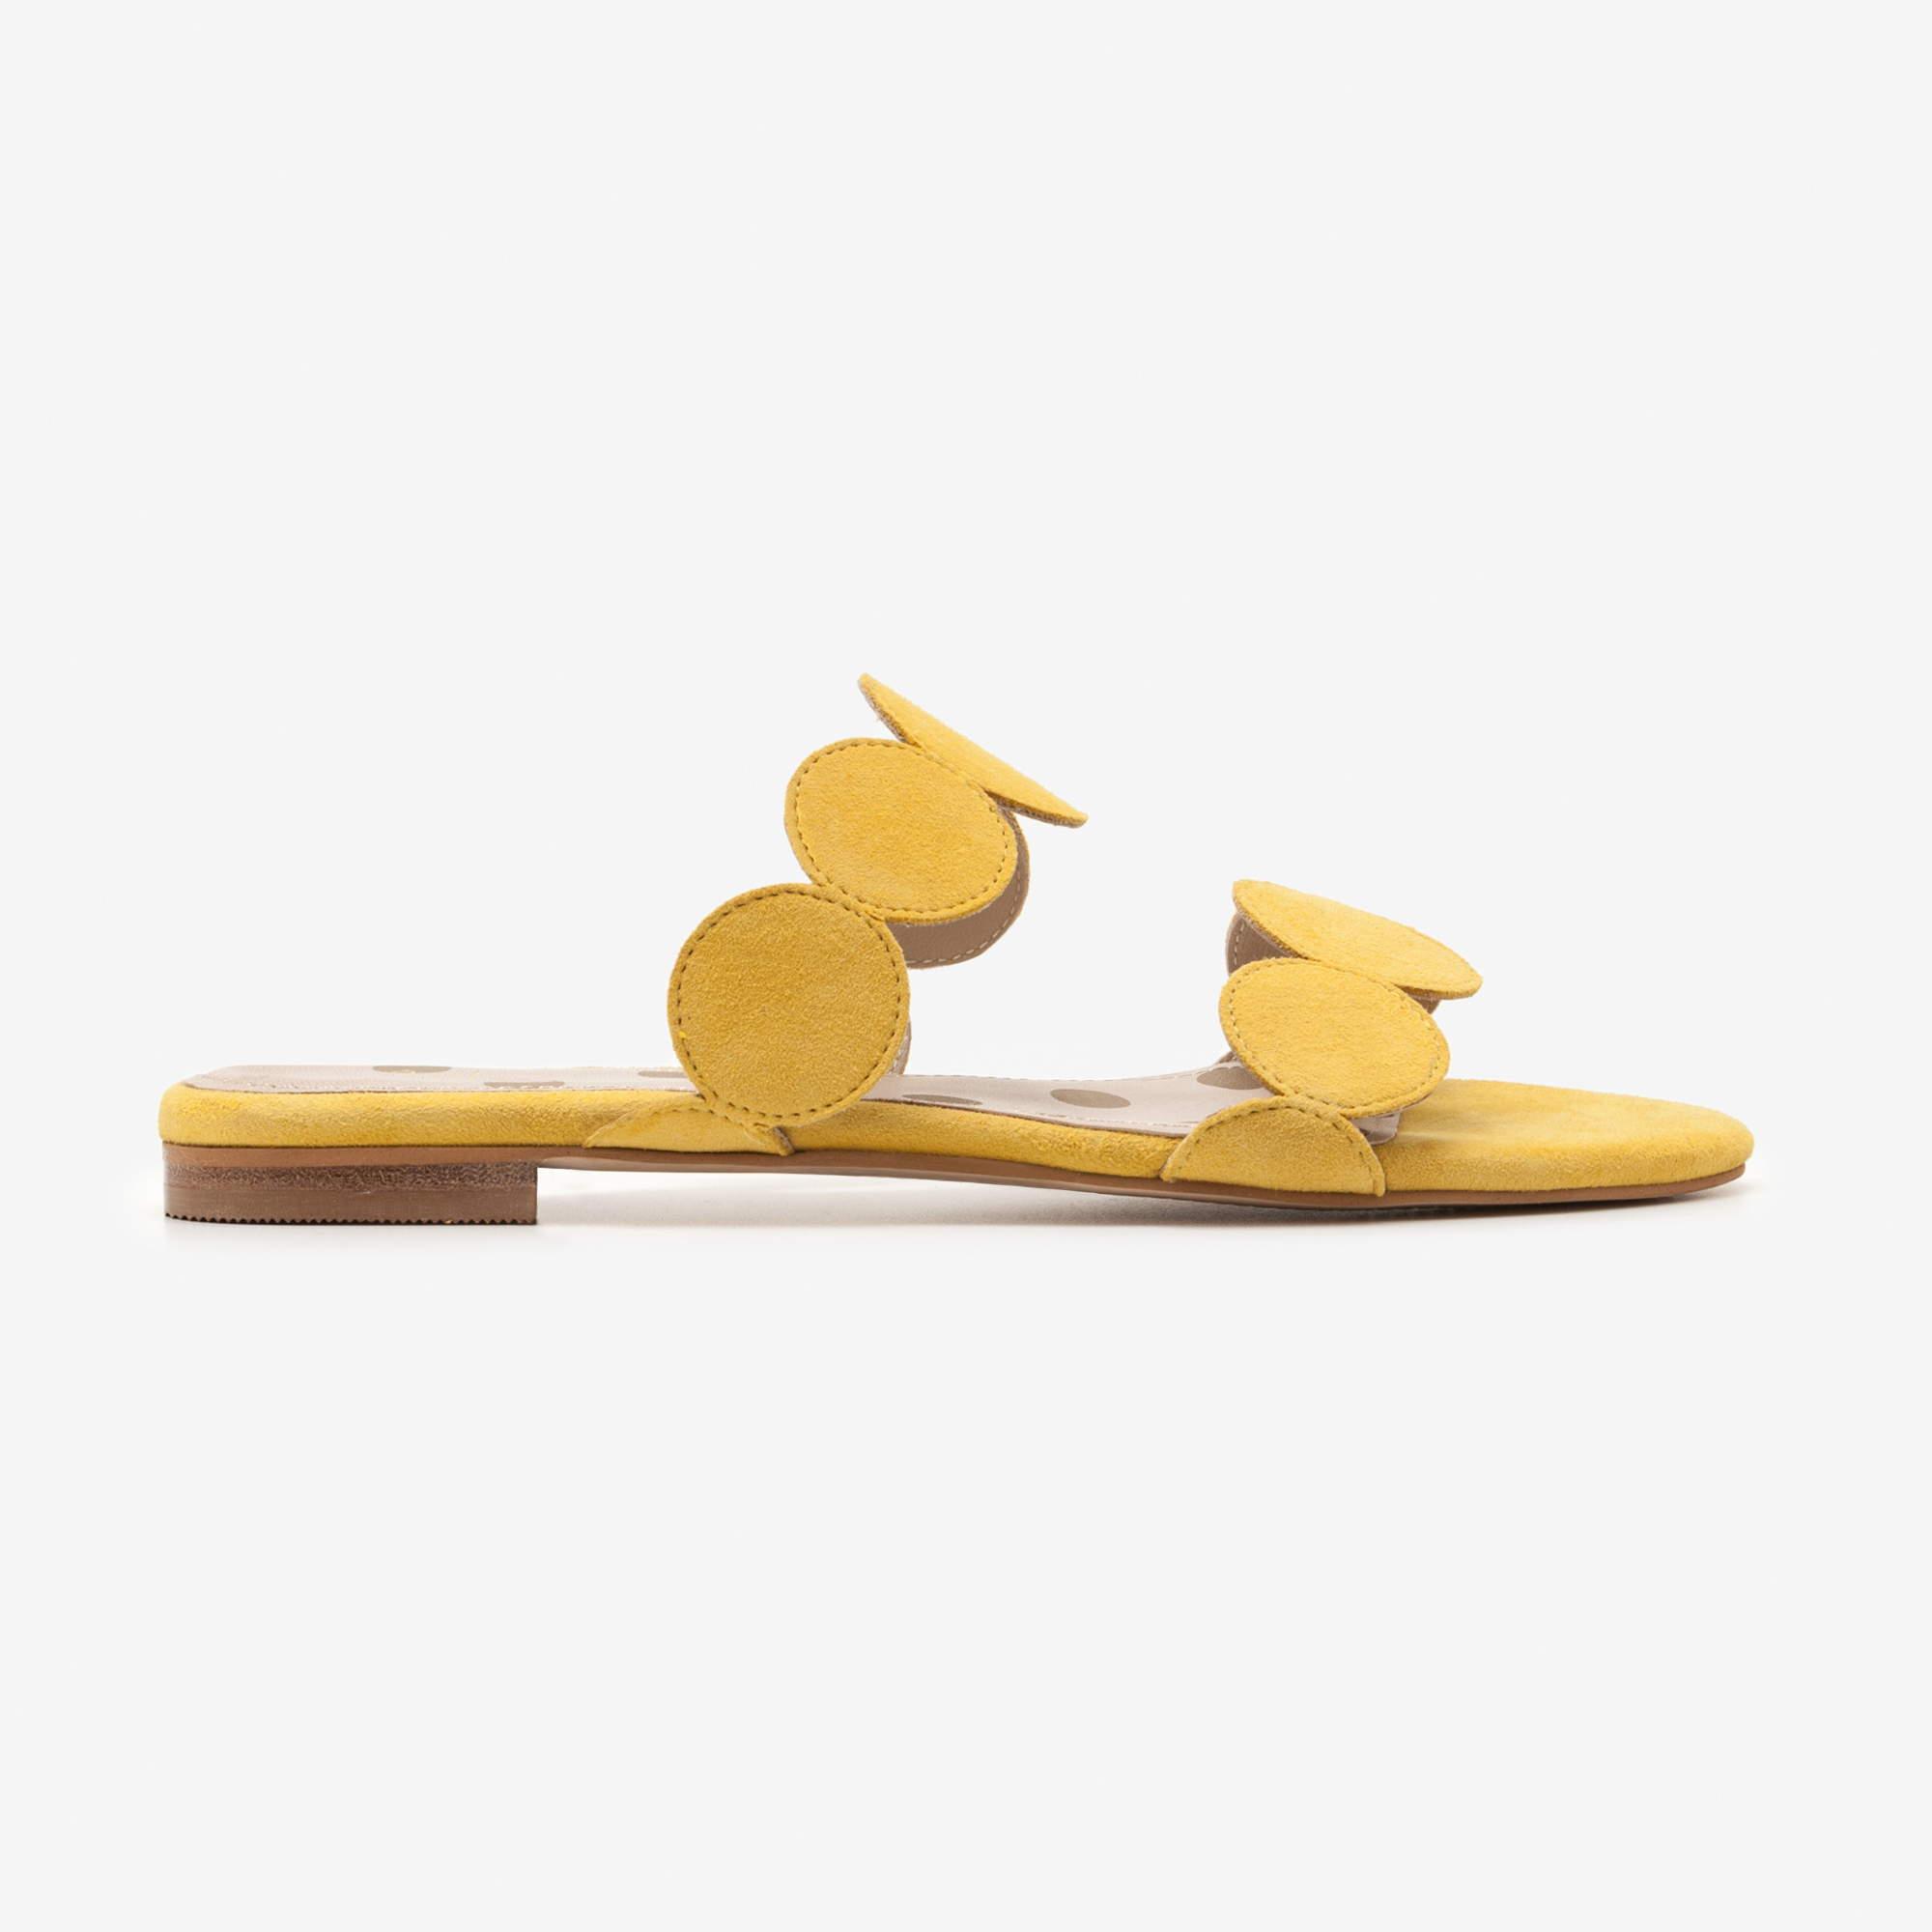 Boden Briana Slides in Mimosa Yellow